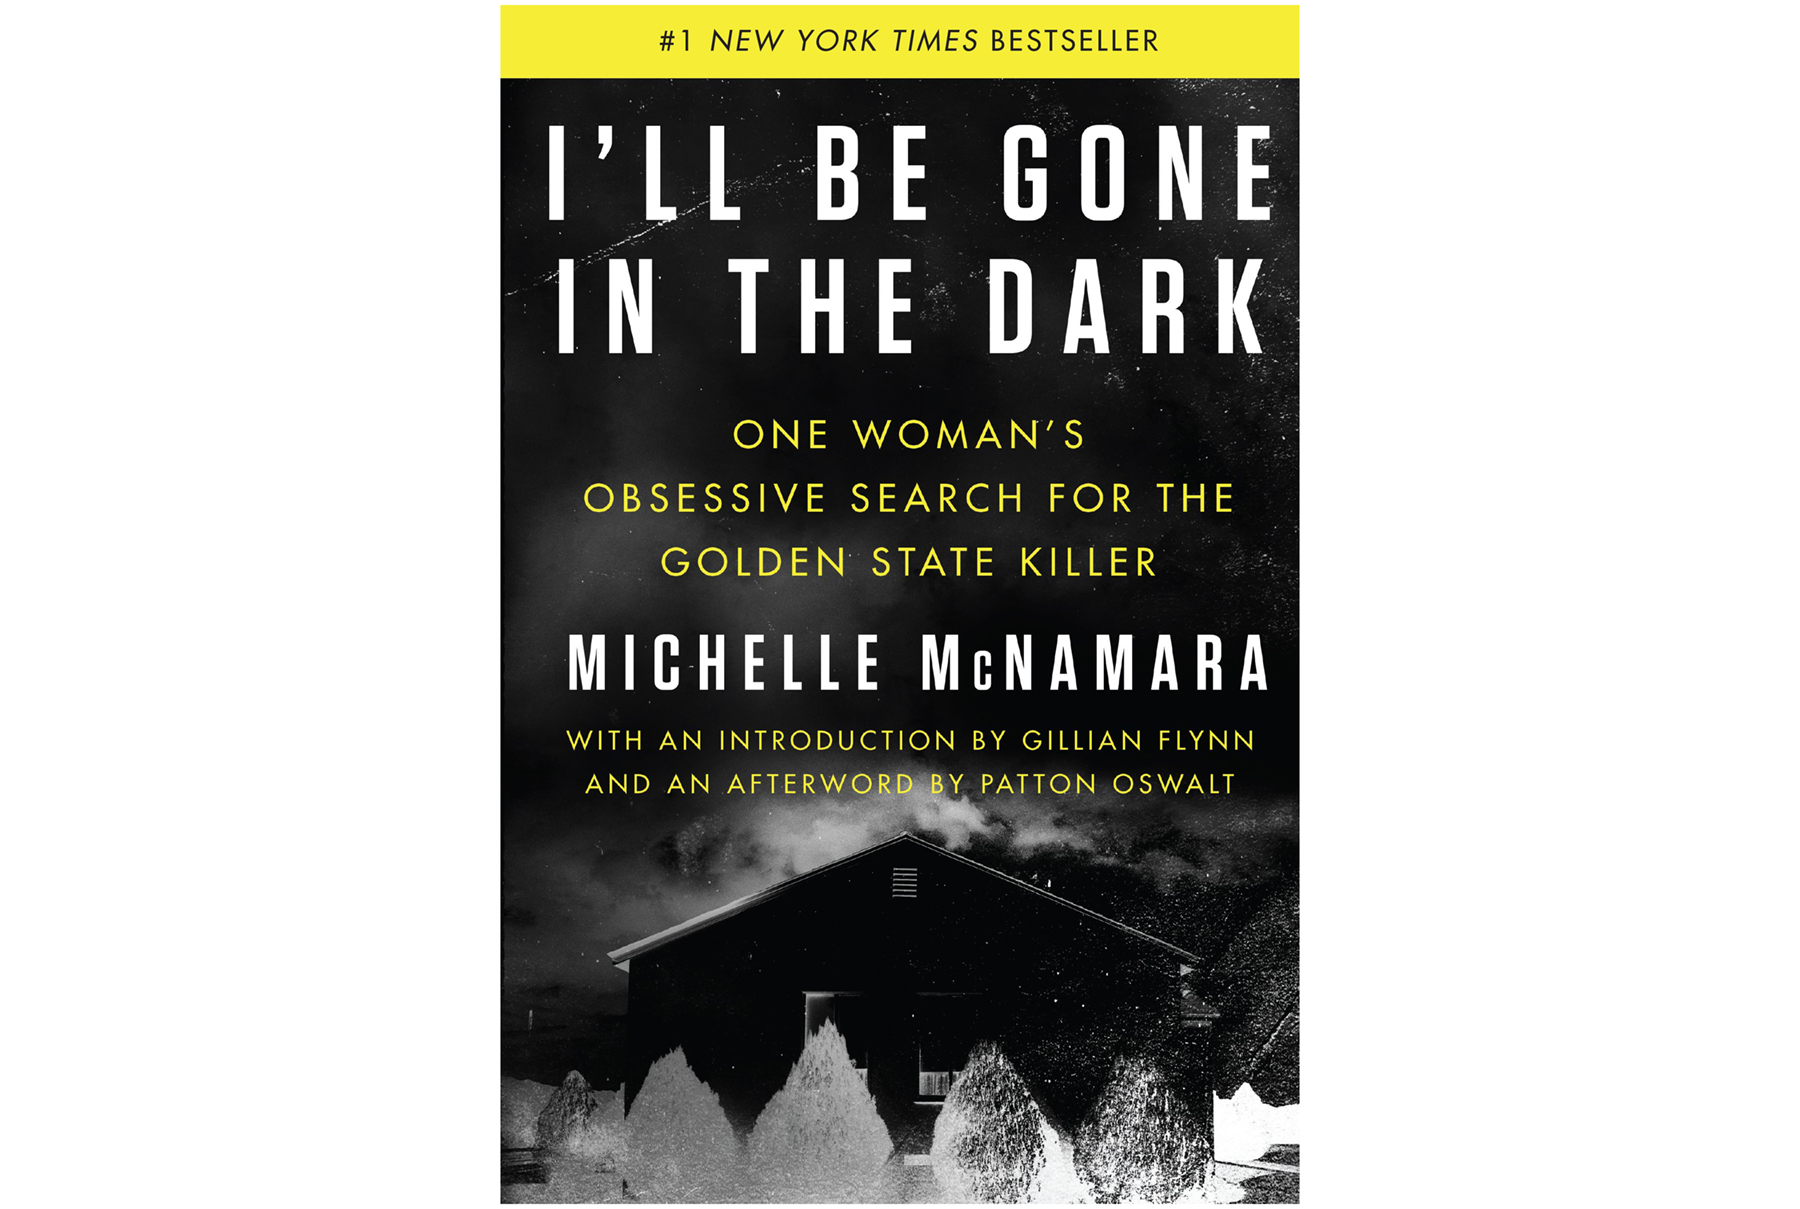 I'll Be Gone In The Dark, by Michelle McNamara